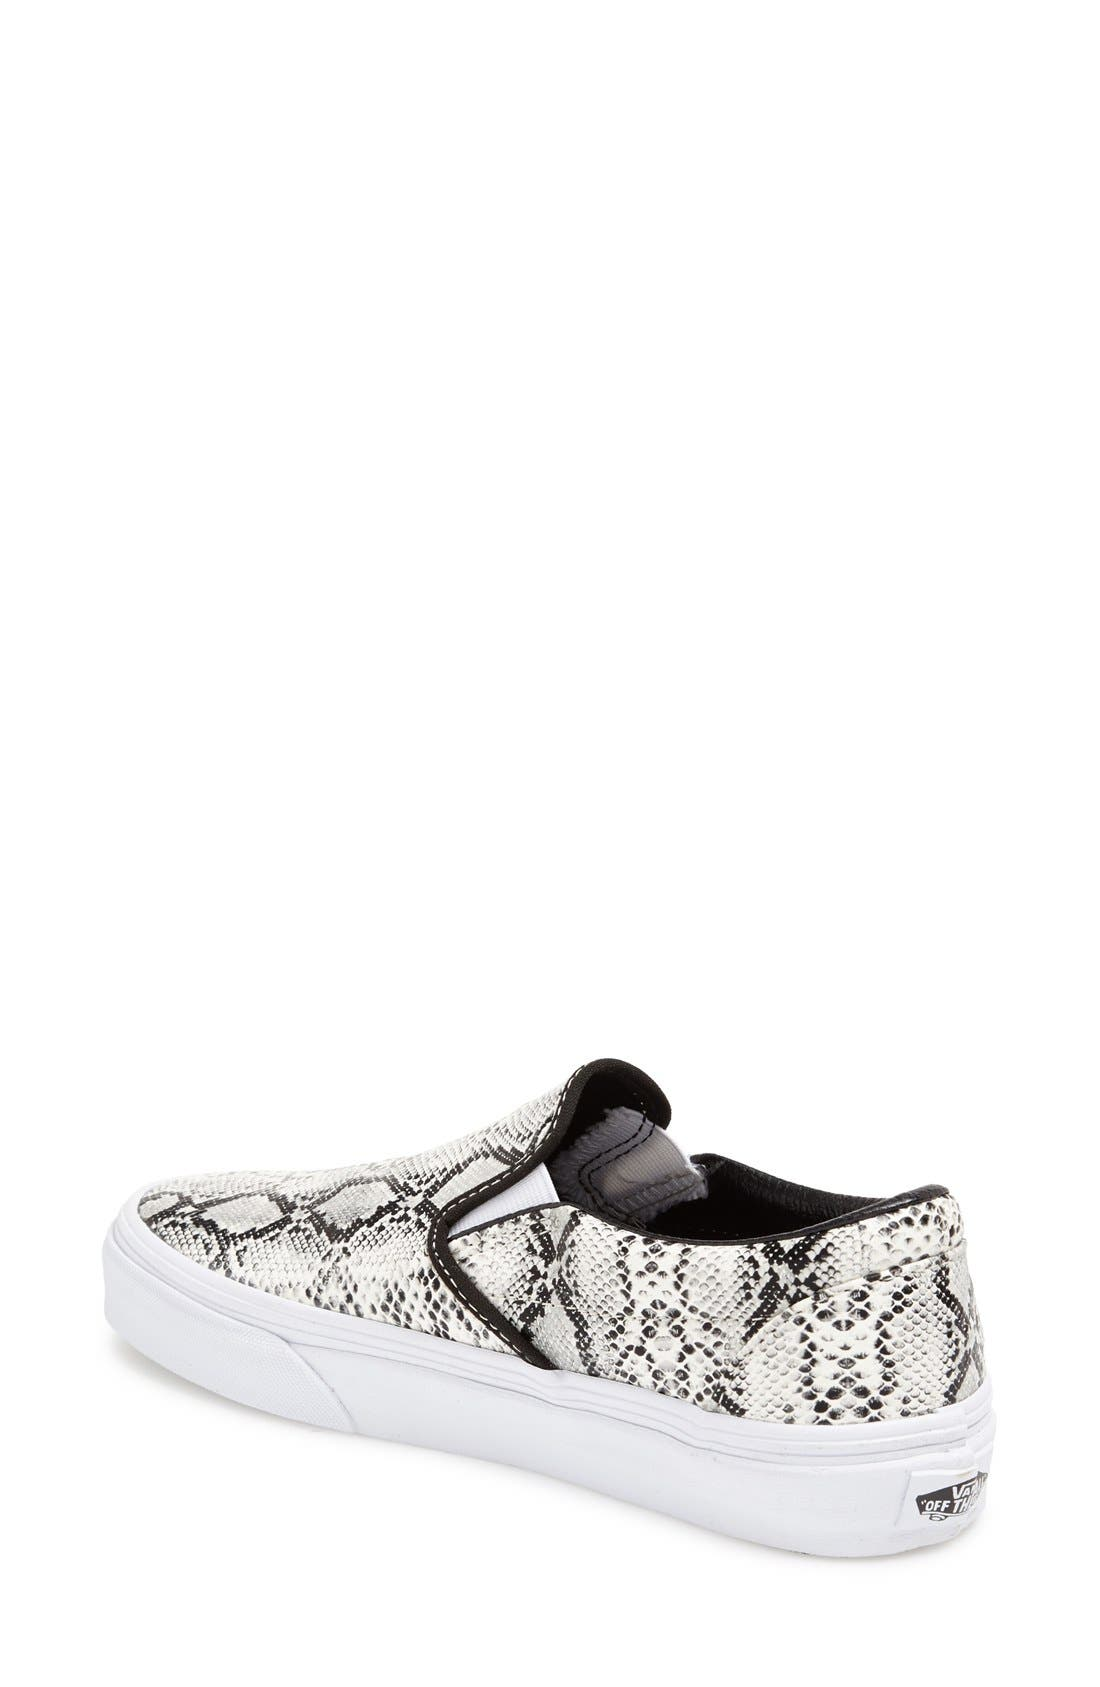 Alternate Image 2  - Vans 'Classic' Slip-On Sneaker (Women)